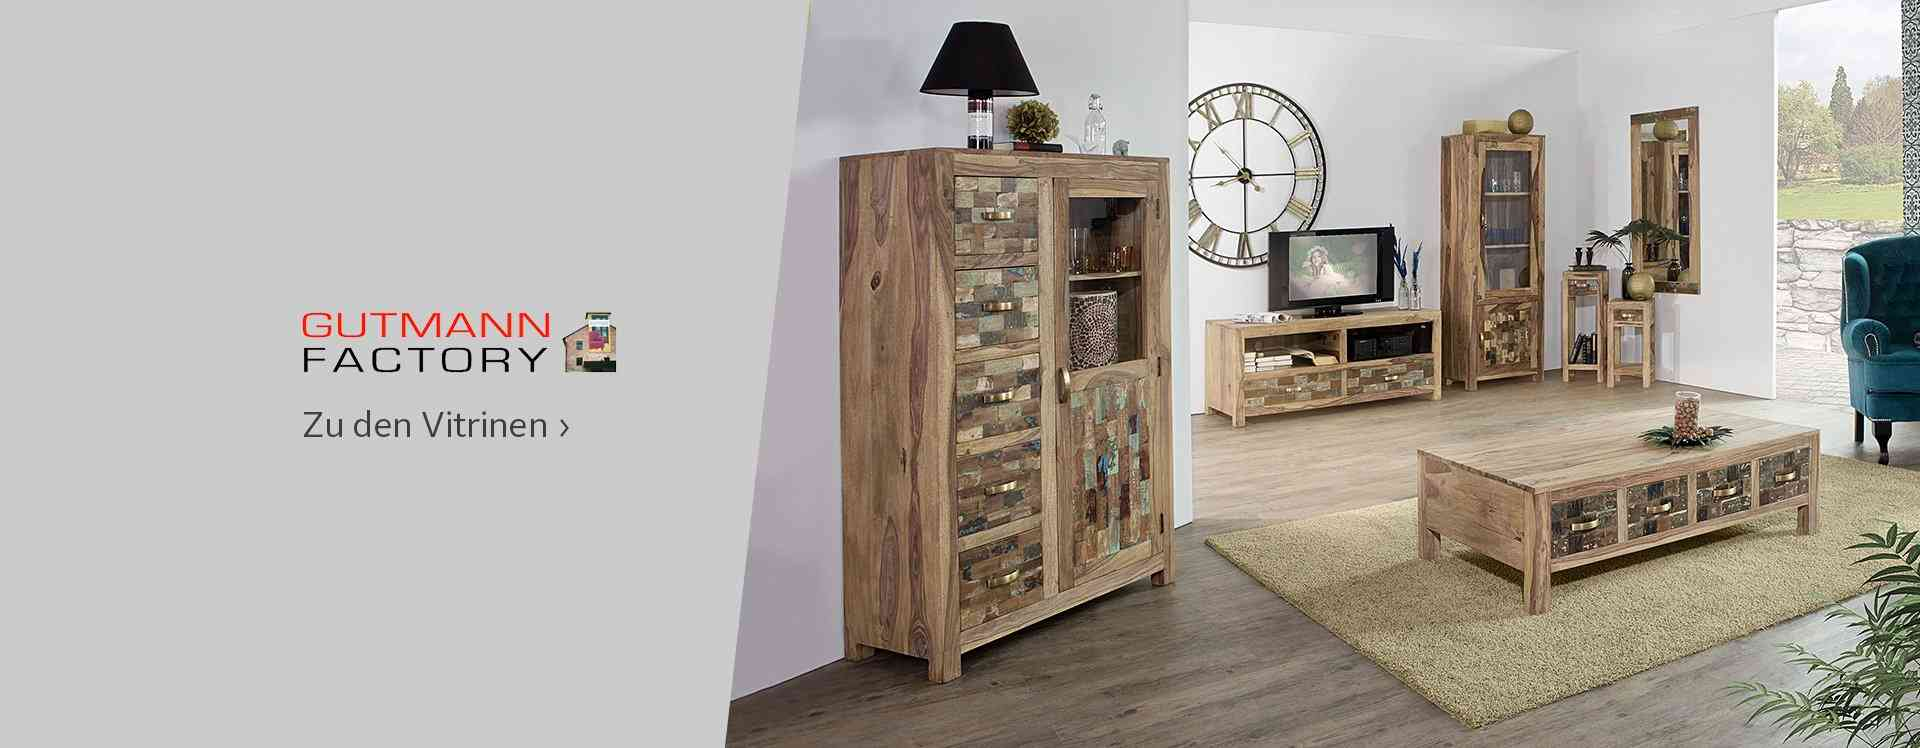 gutmann factory m bel online kaufen otto. Black Bedroom Furniture Sets. Home Design Ideas